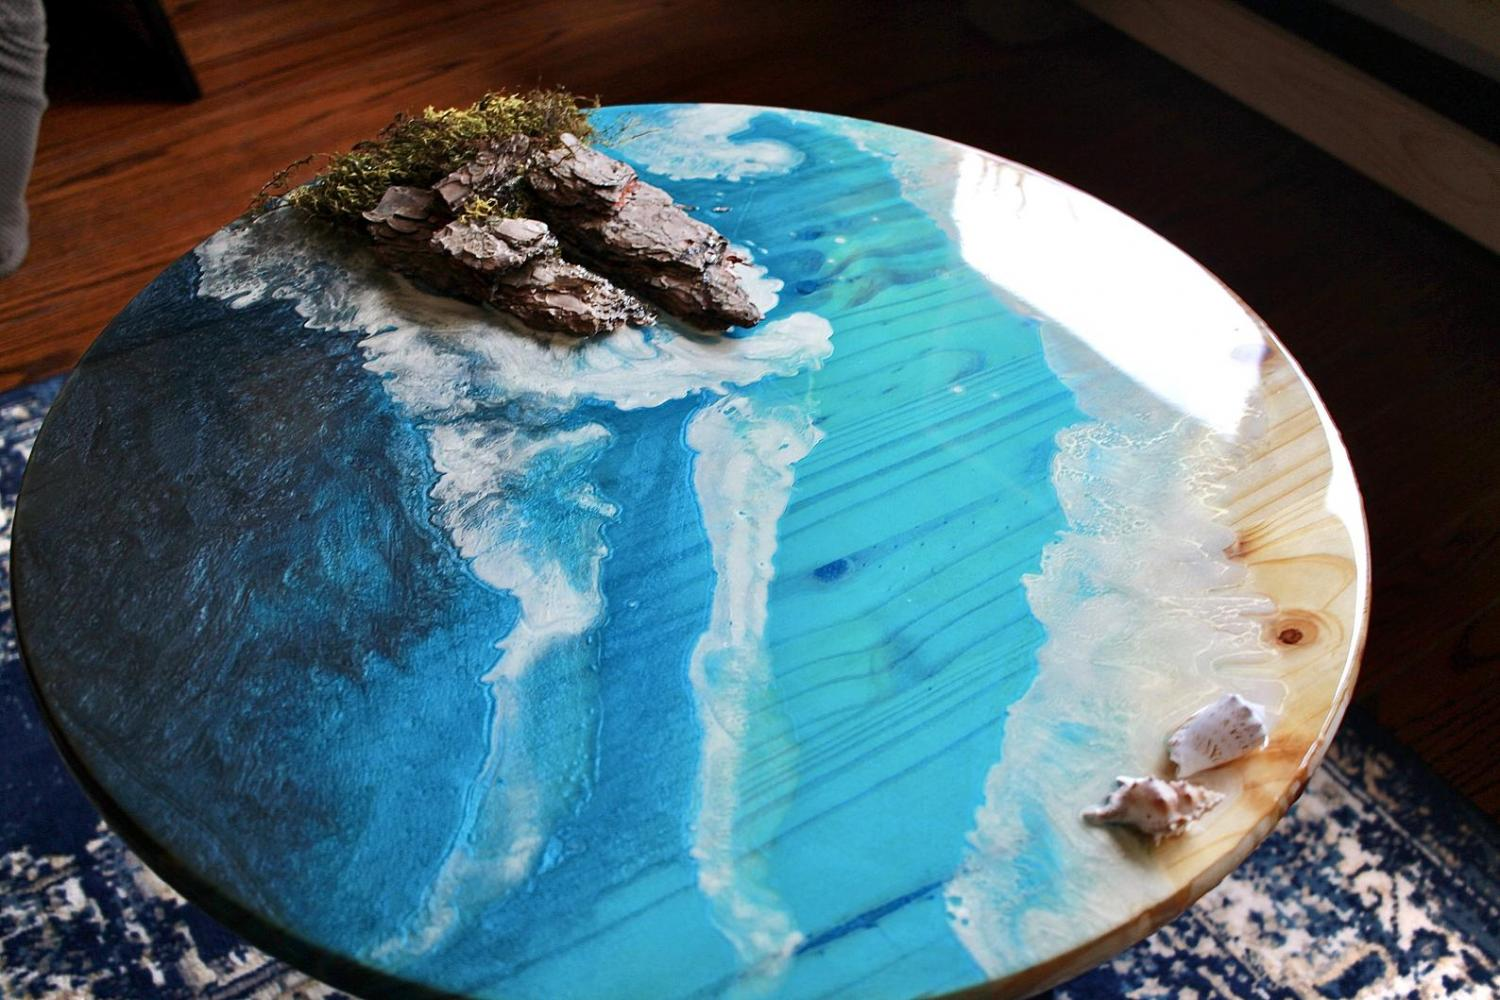 A circular epoxy table made to look like the shore of an ocean